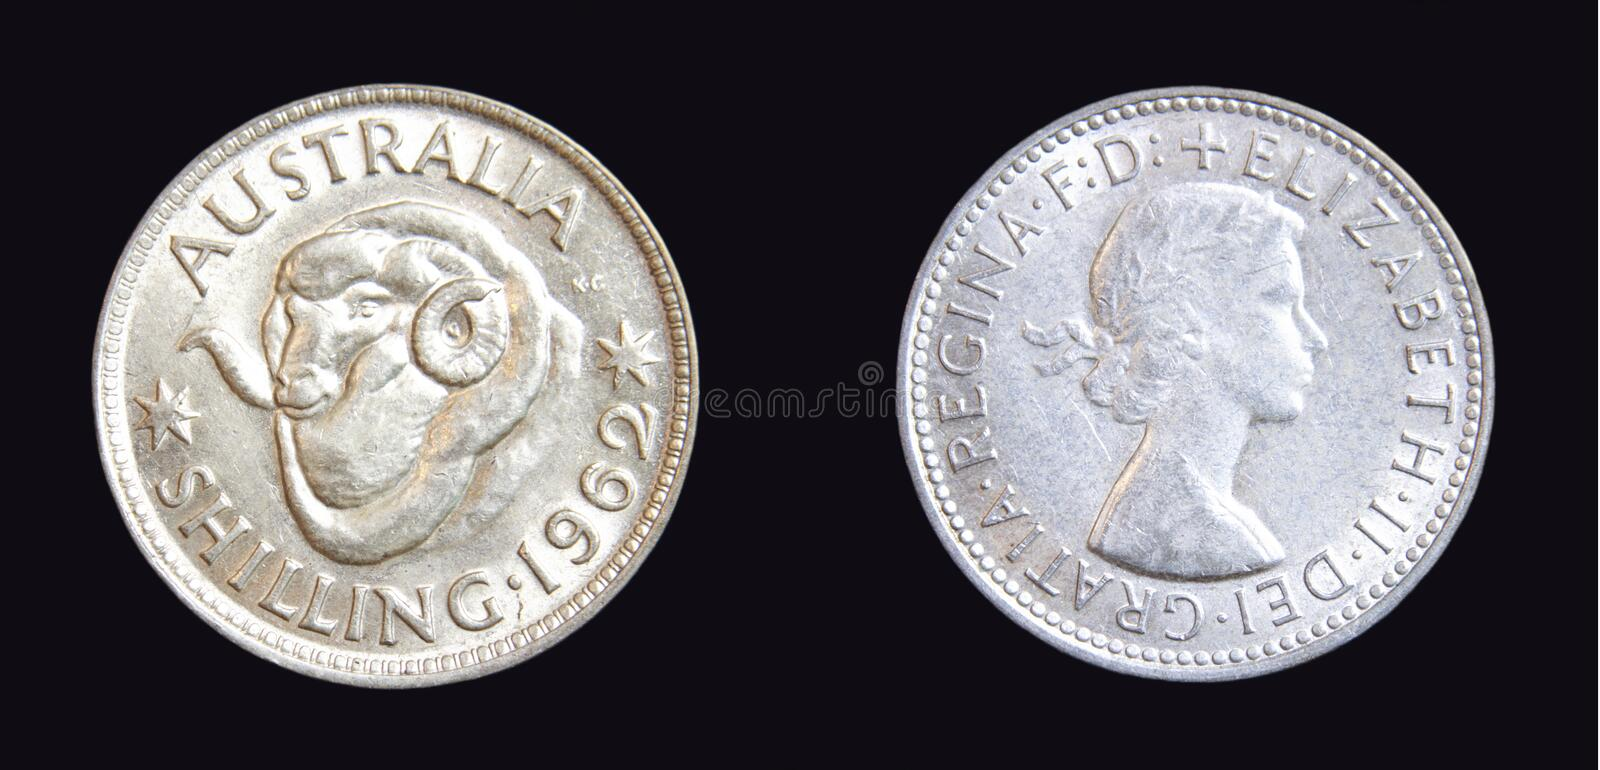 1962 Australian Shilling Silver Coin. 1962 Australian Shilling pre-decimal silver coin on isolated dark background royalty free stock photos